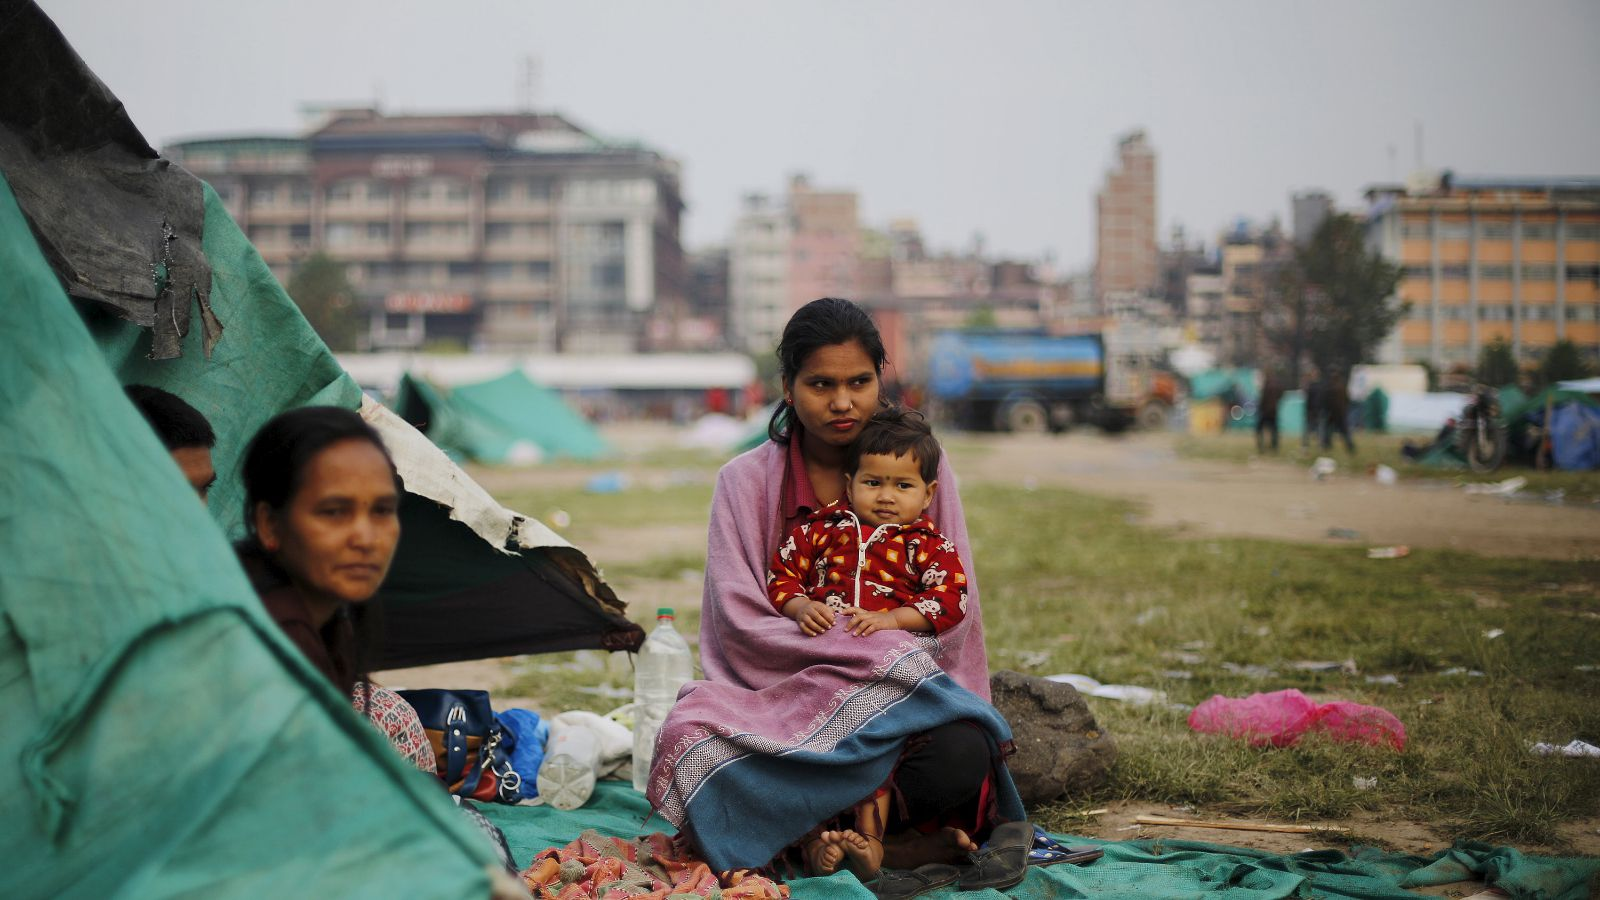 An earthquake victim holds her daughter as she sits outside her makeshift shelter on open ground in the early hours in Kathmandu, Nepal April 28, 2015.